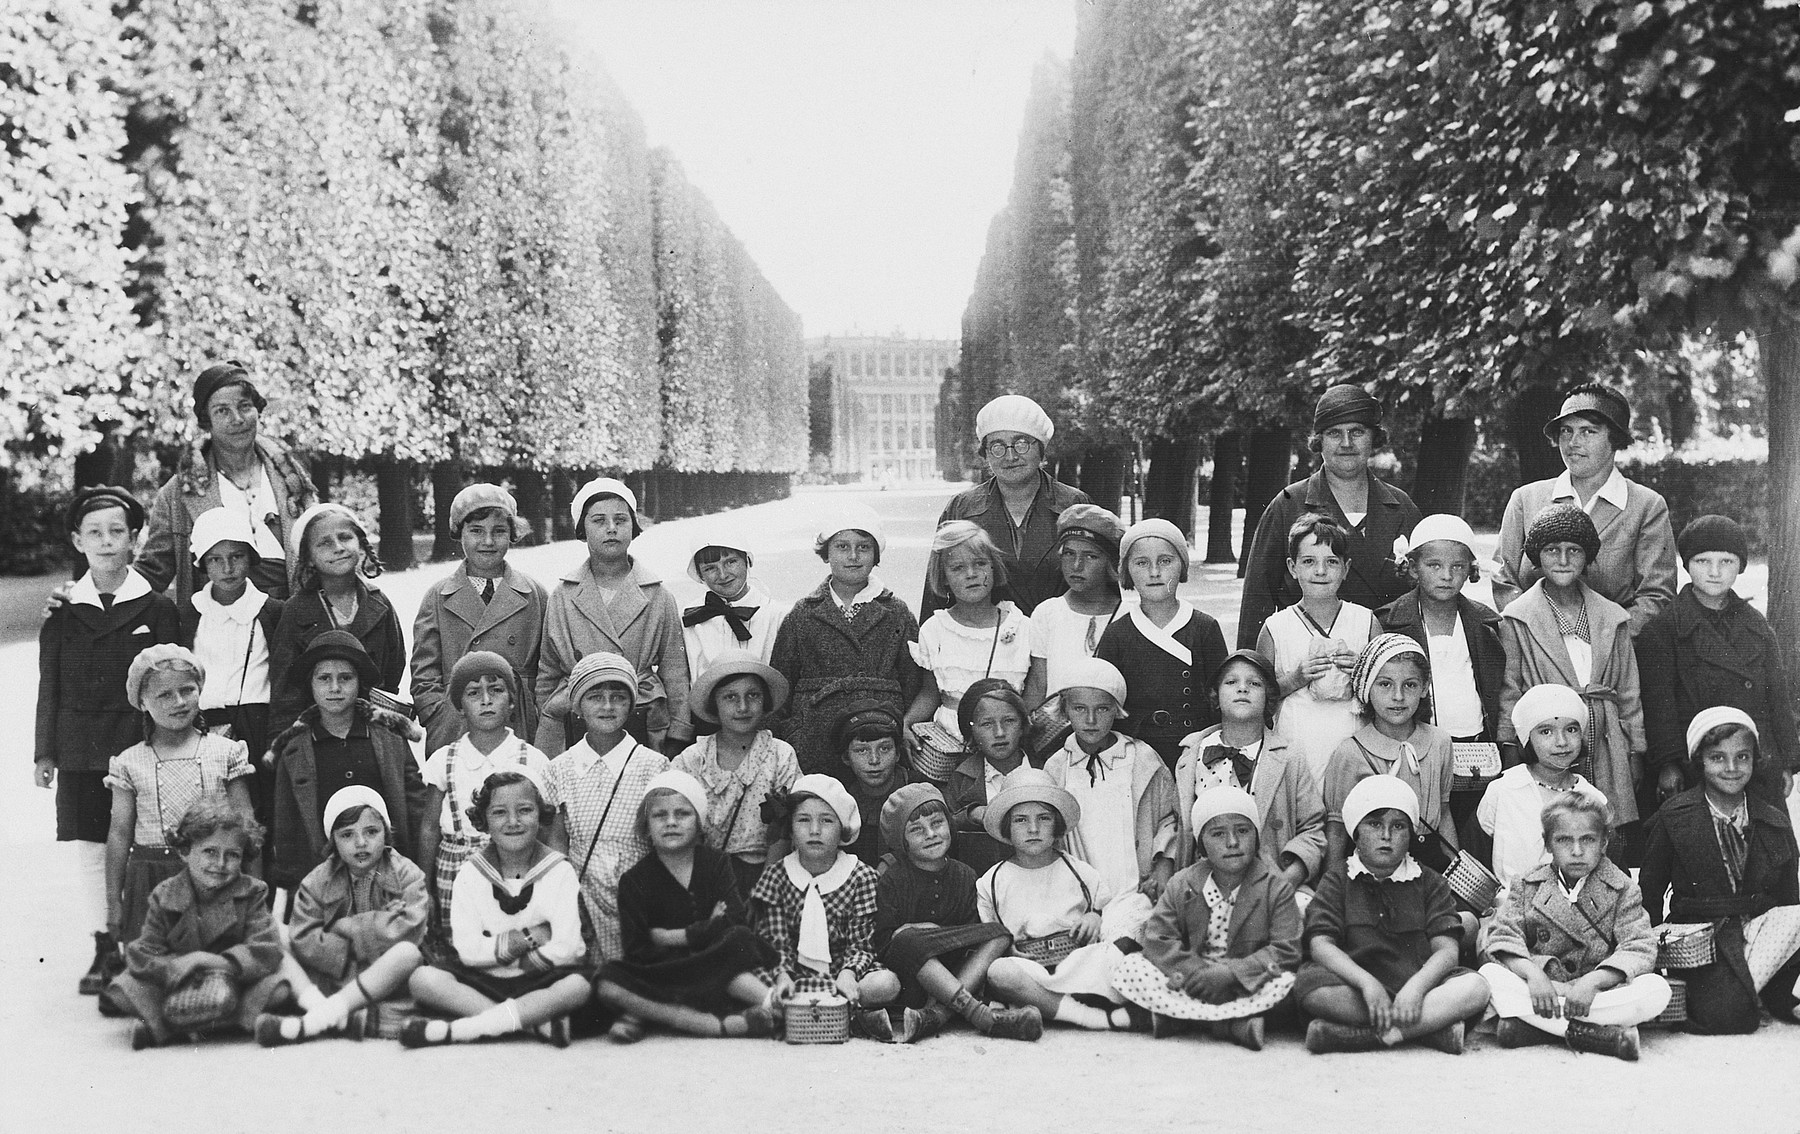 Group portrait of a class of both Christian and Jewish children in an Austrian elementary school.  Among those pictured is Susi Popper.